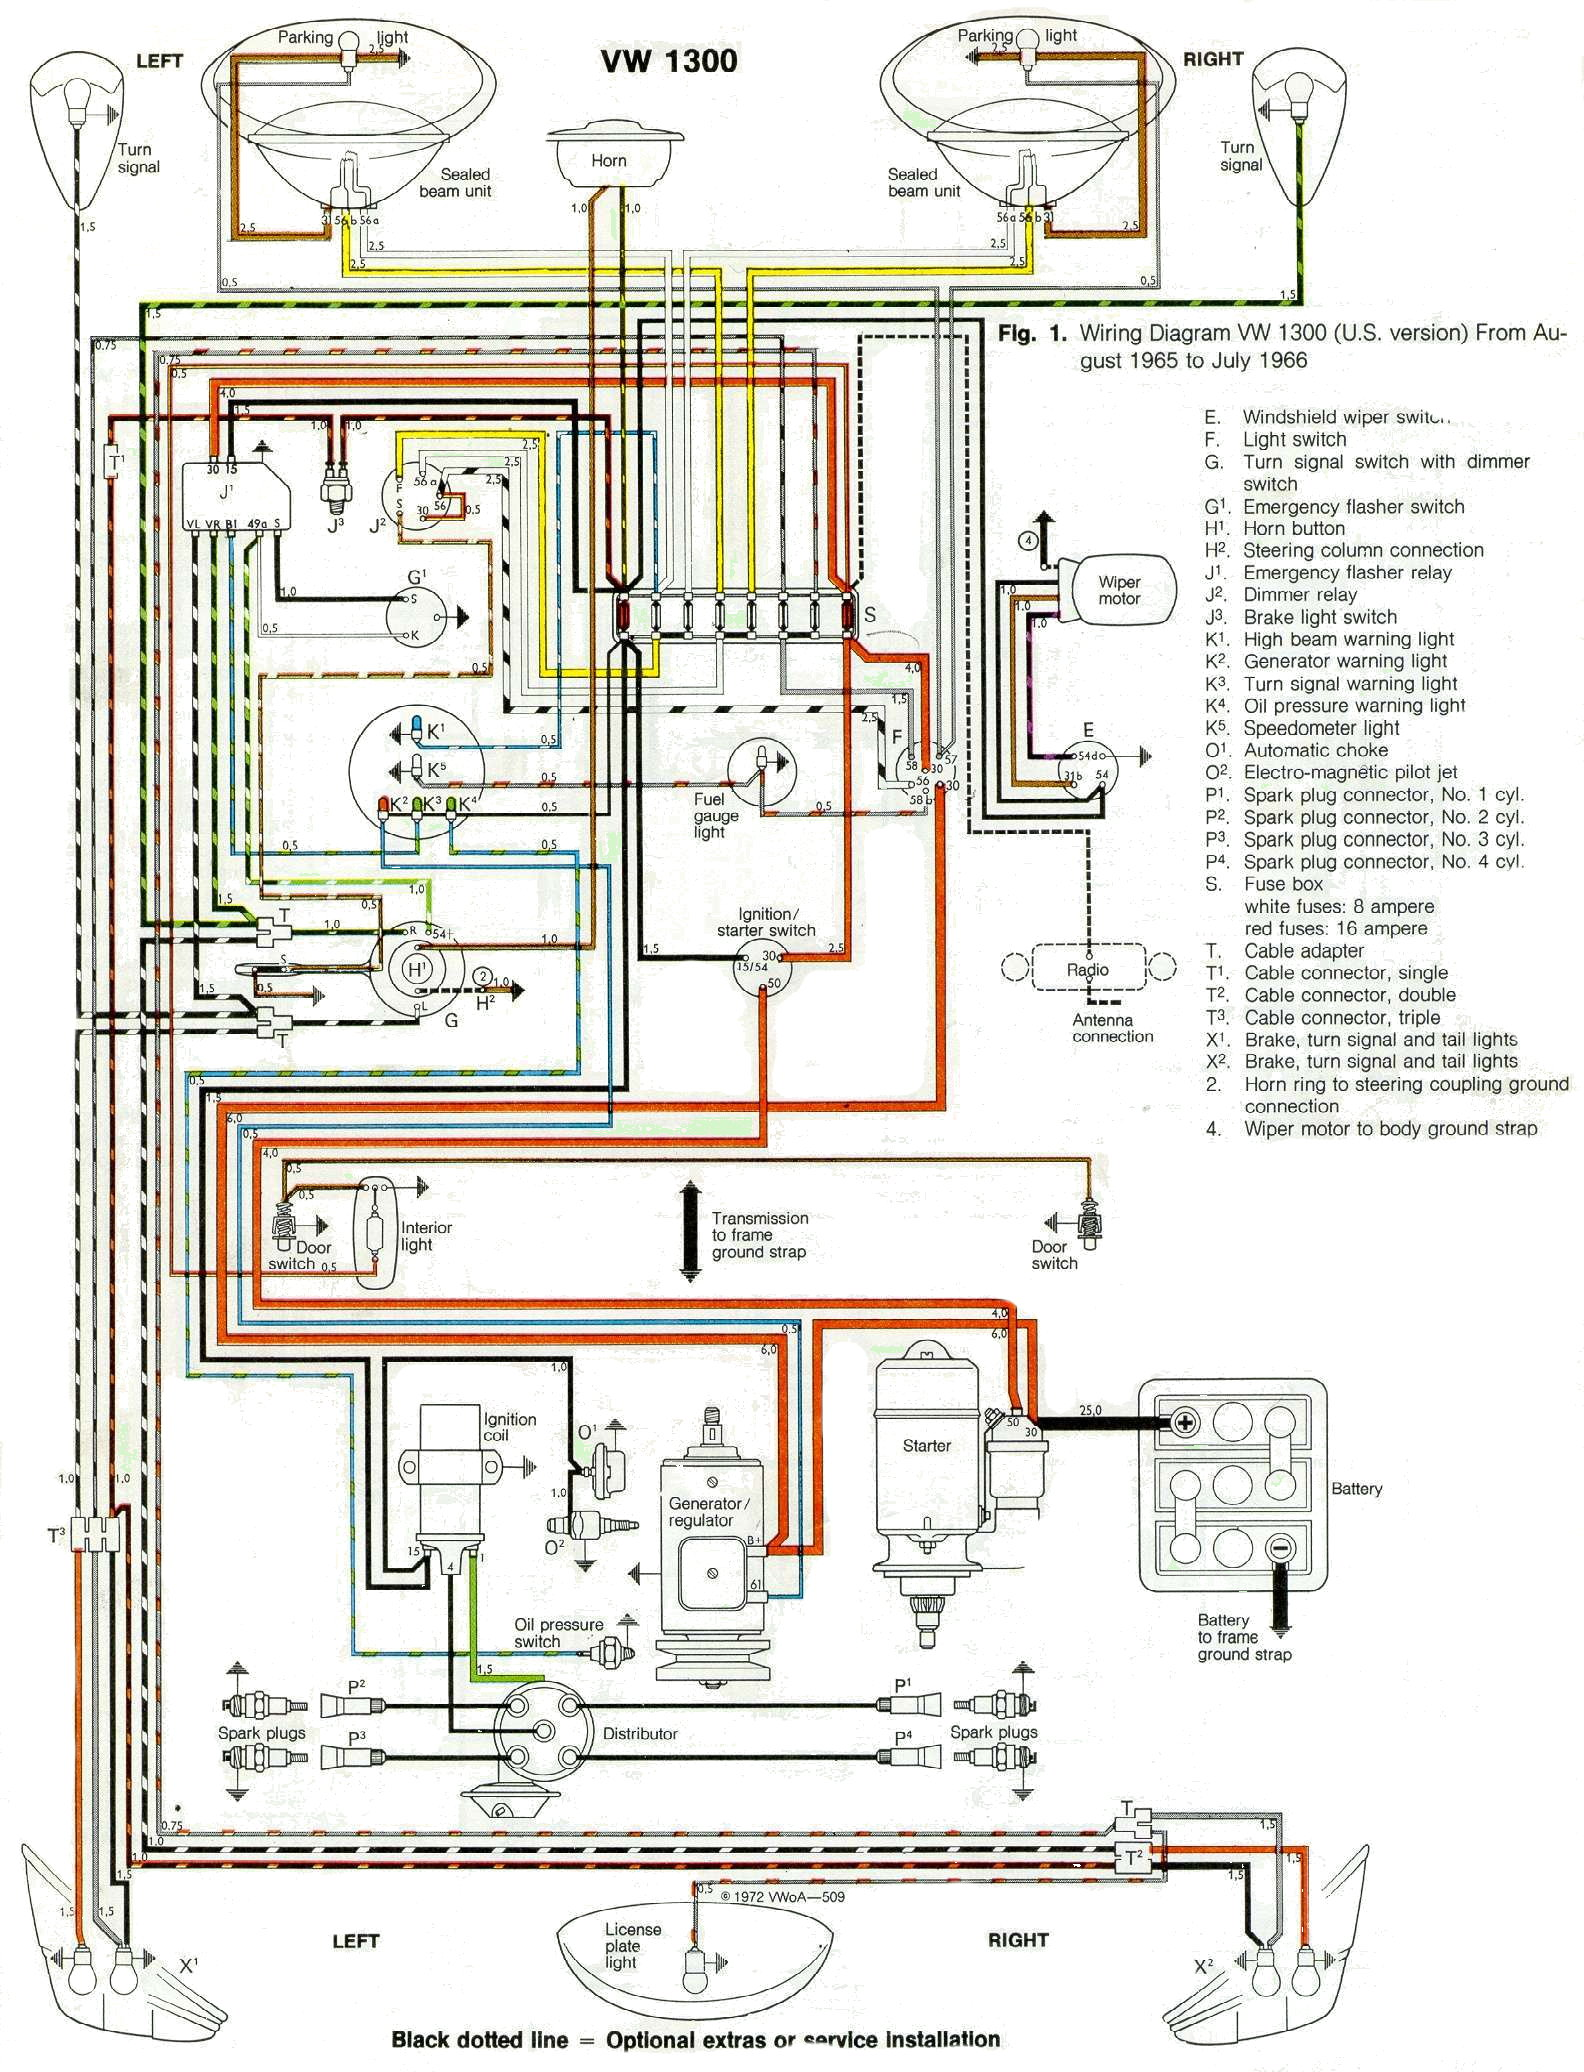 1965 Vw Wiring Diagram Opinions About Wiring Diagram \u2022 VW Beetle Wiring  76 Vw Bug Wiring Diagram